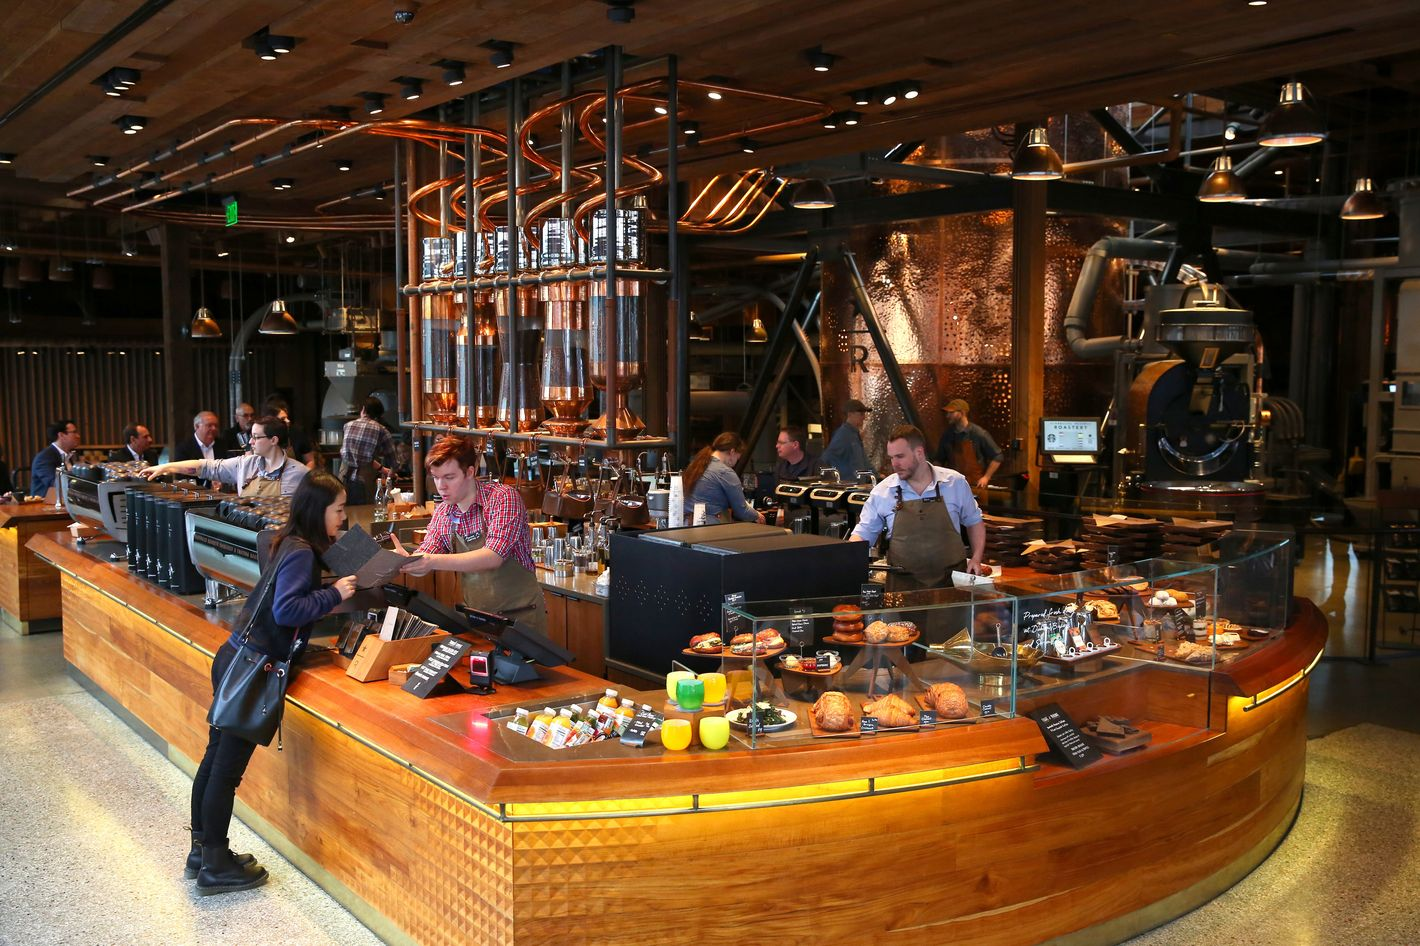 worlds largest starbucks will open in manhattan